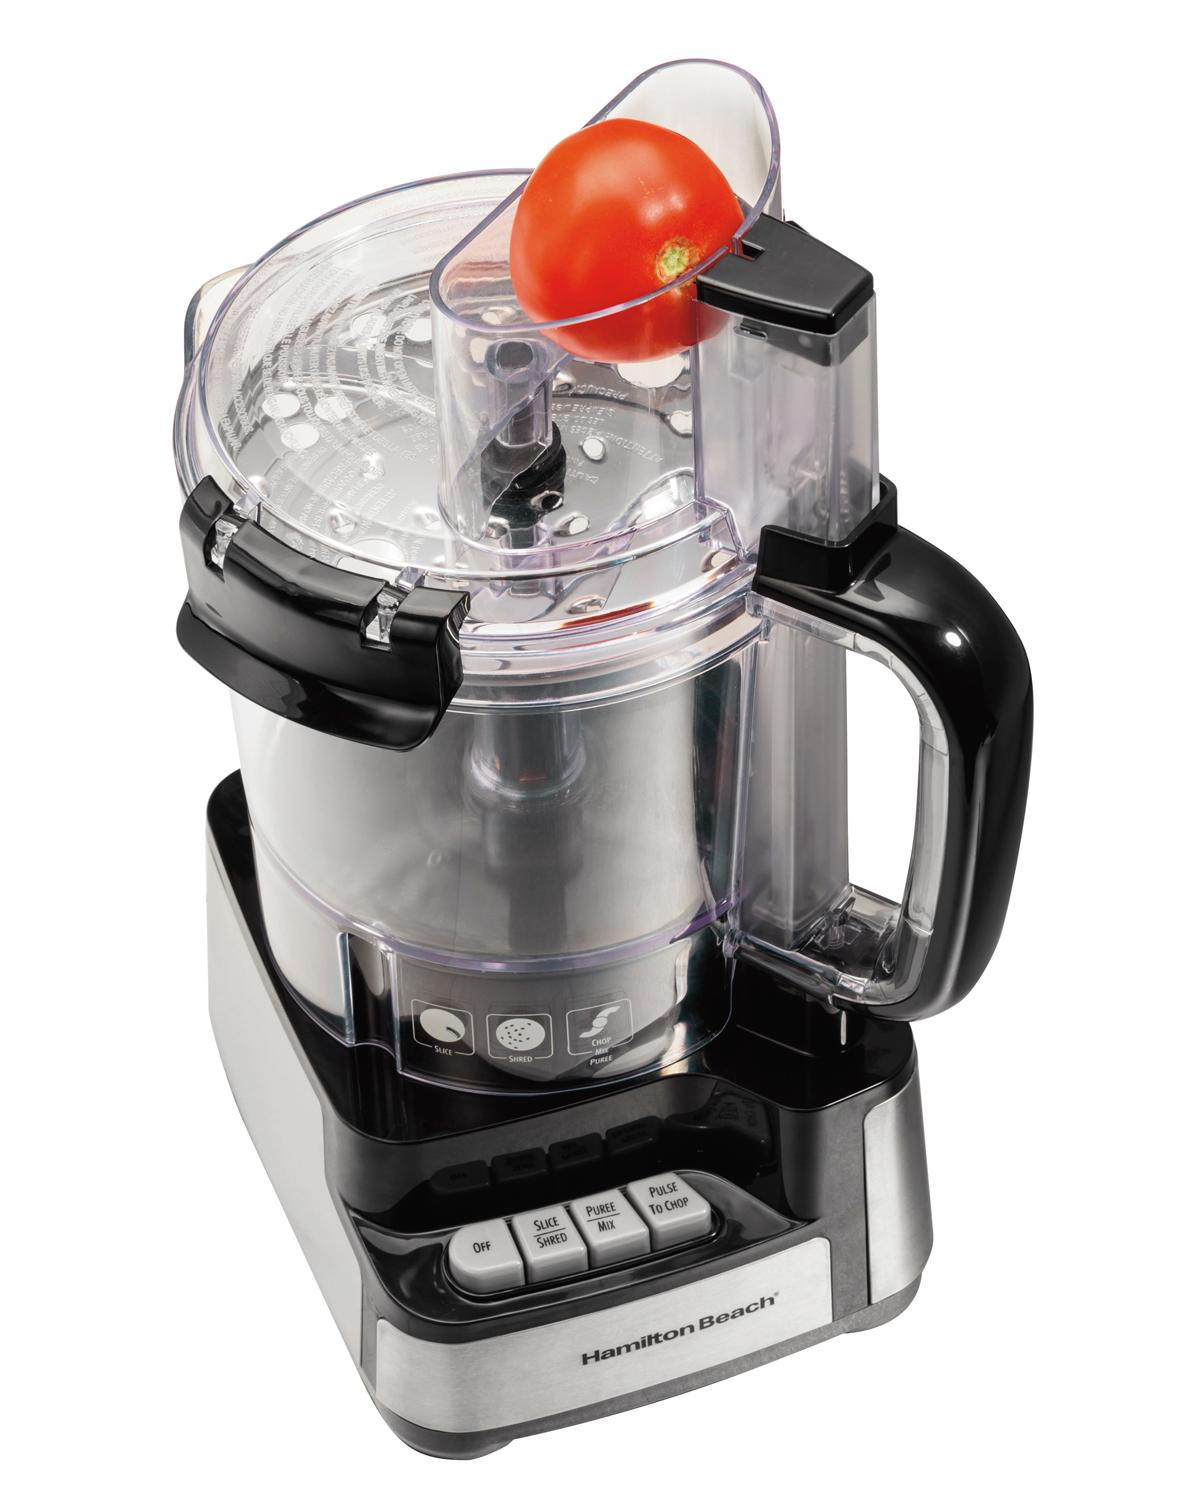 Breville Food Processor Shred Cheese